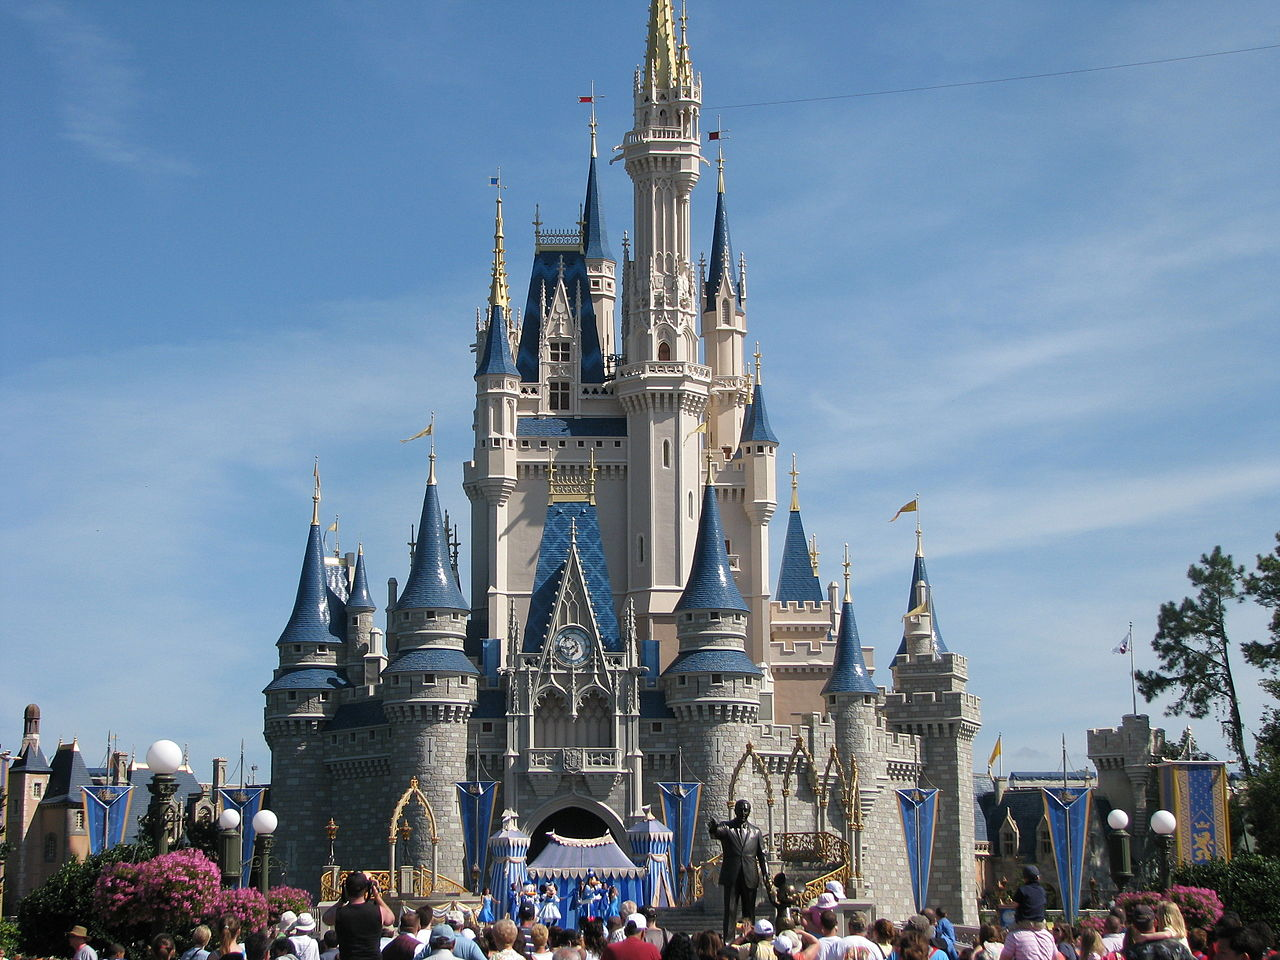 4 Discounts and Deals Walt Disney World Guests Can Take Advantage of Right Now